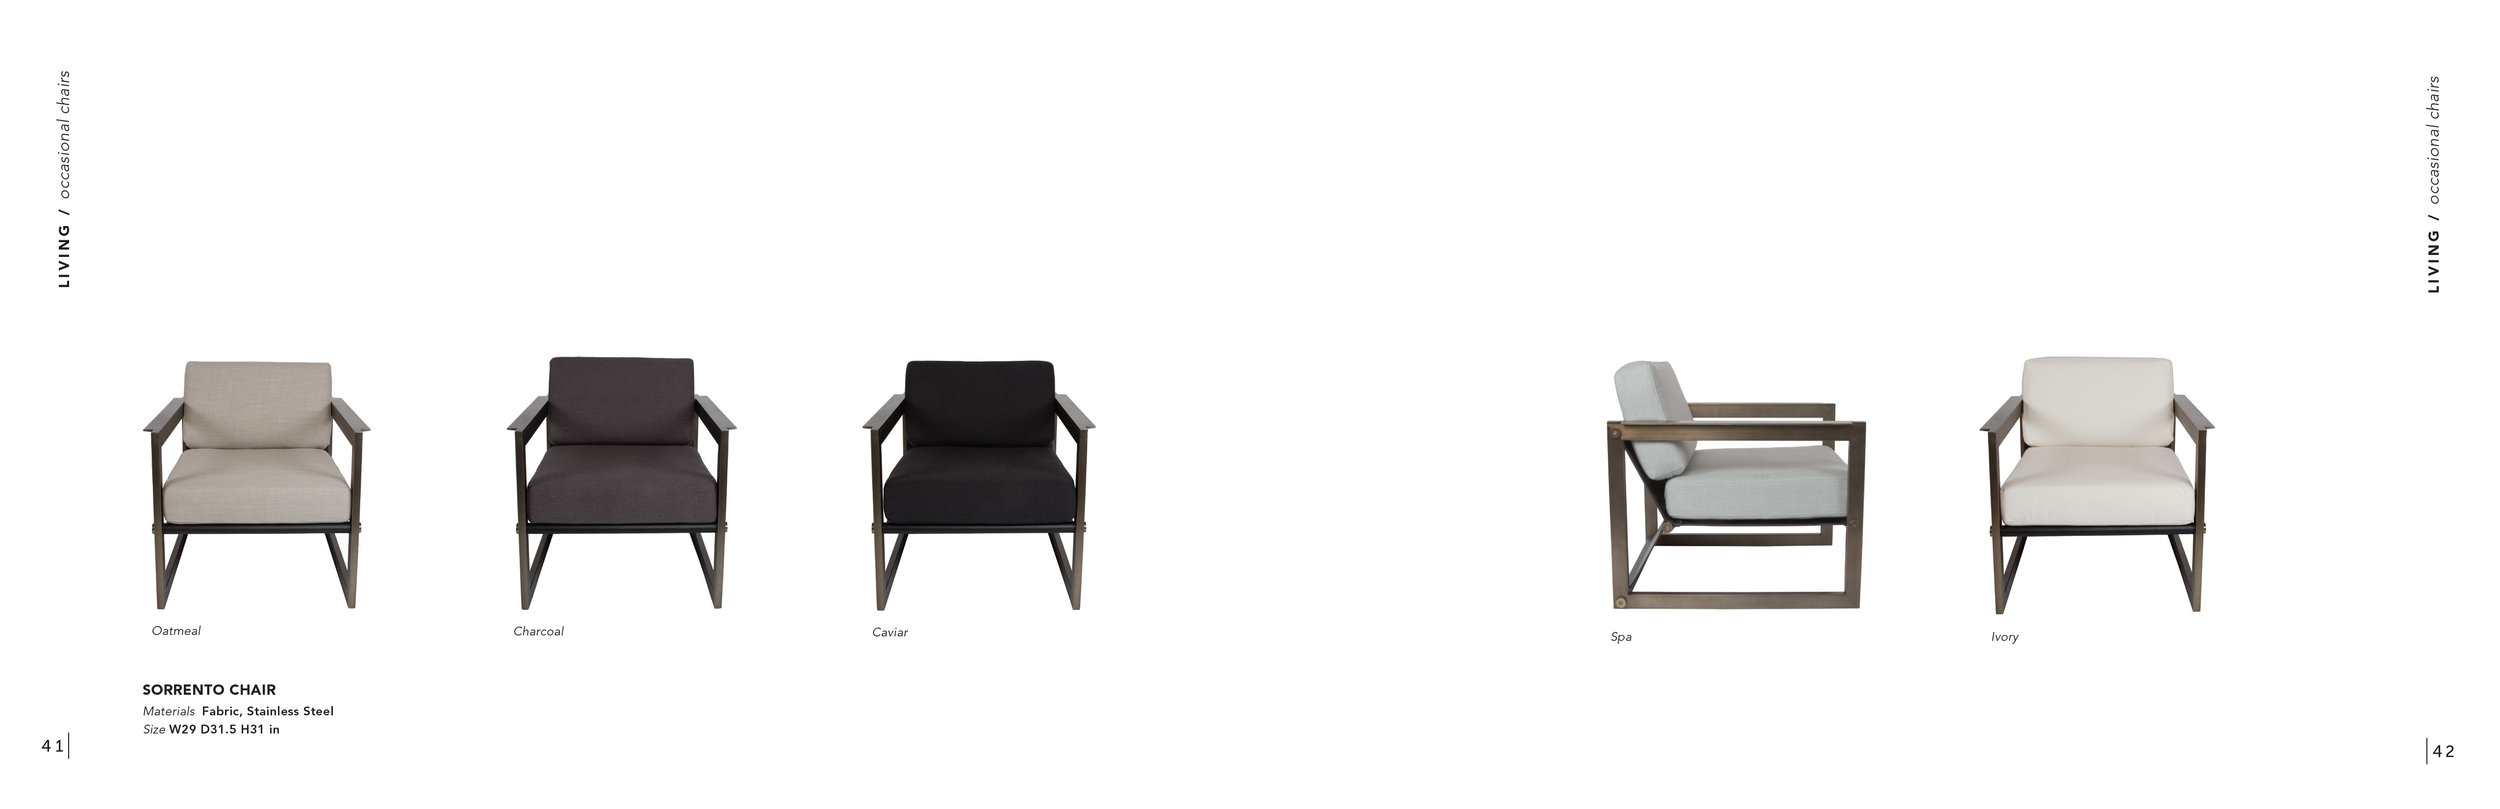 The Goods Catalogue Covers_Chairs.jpg